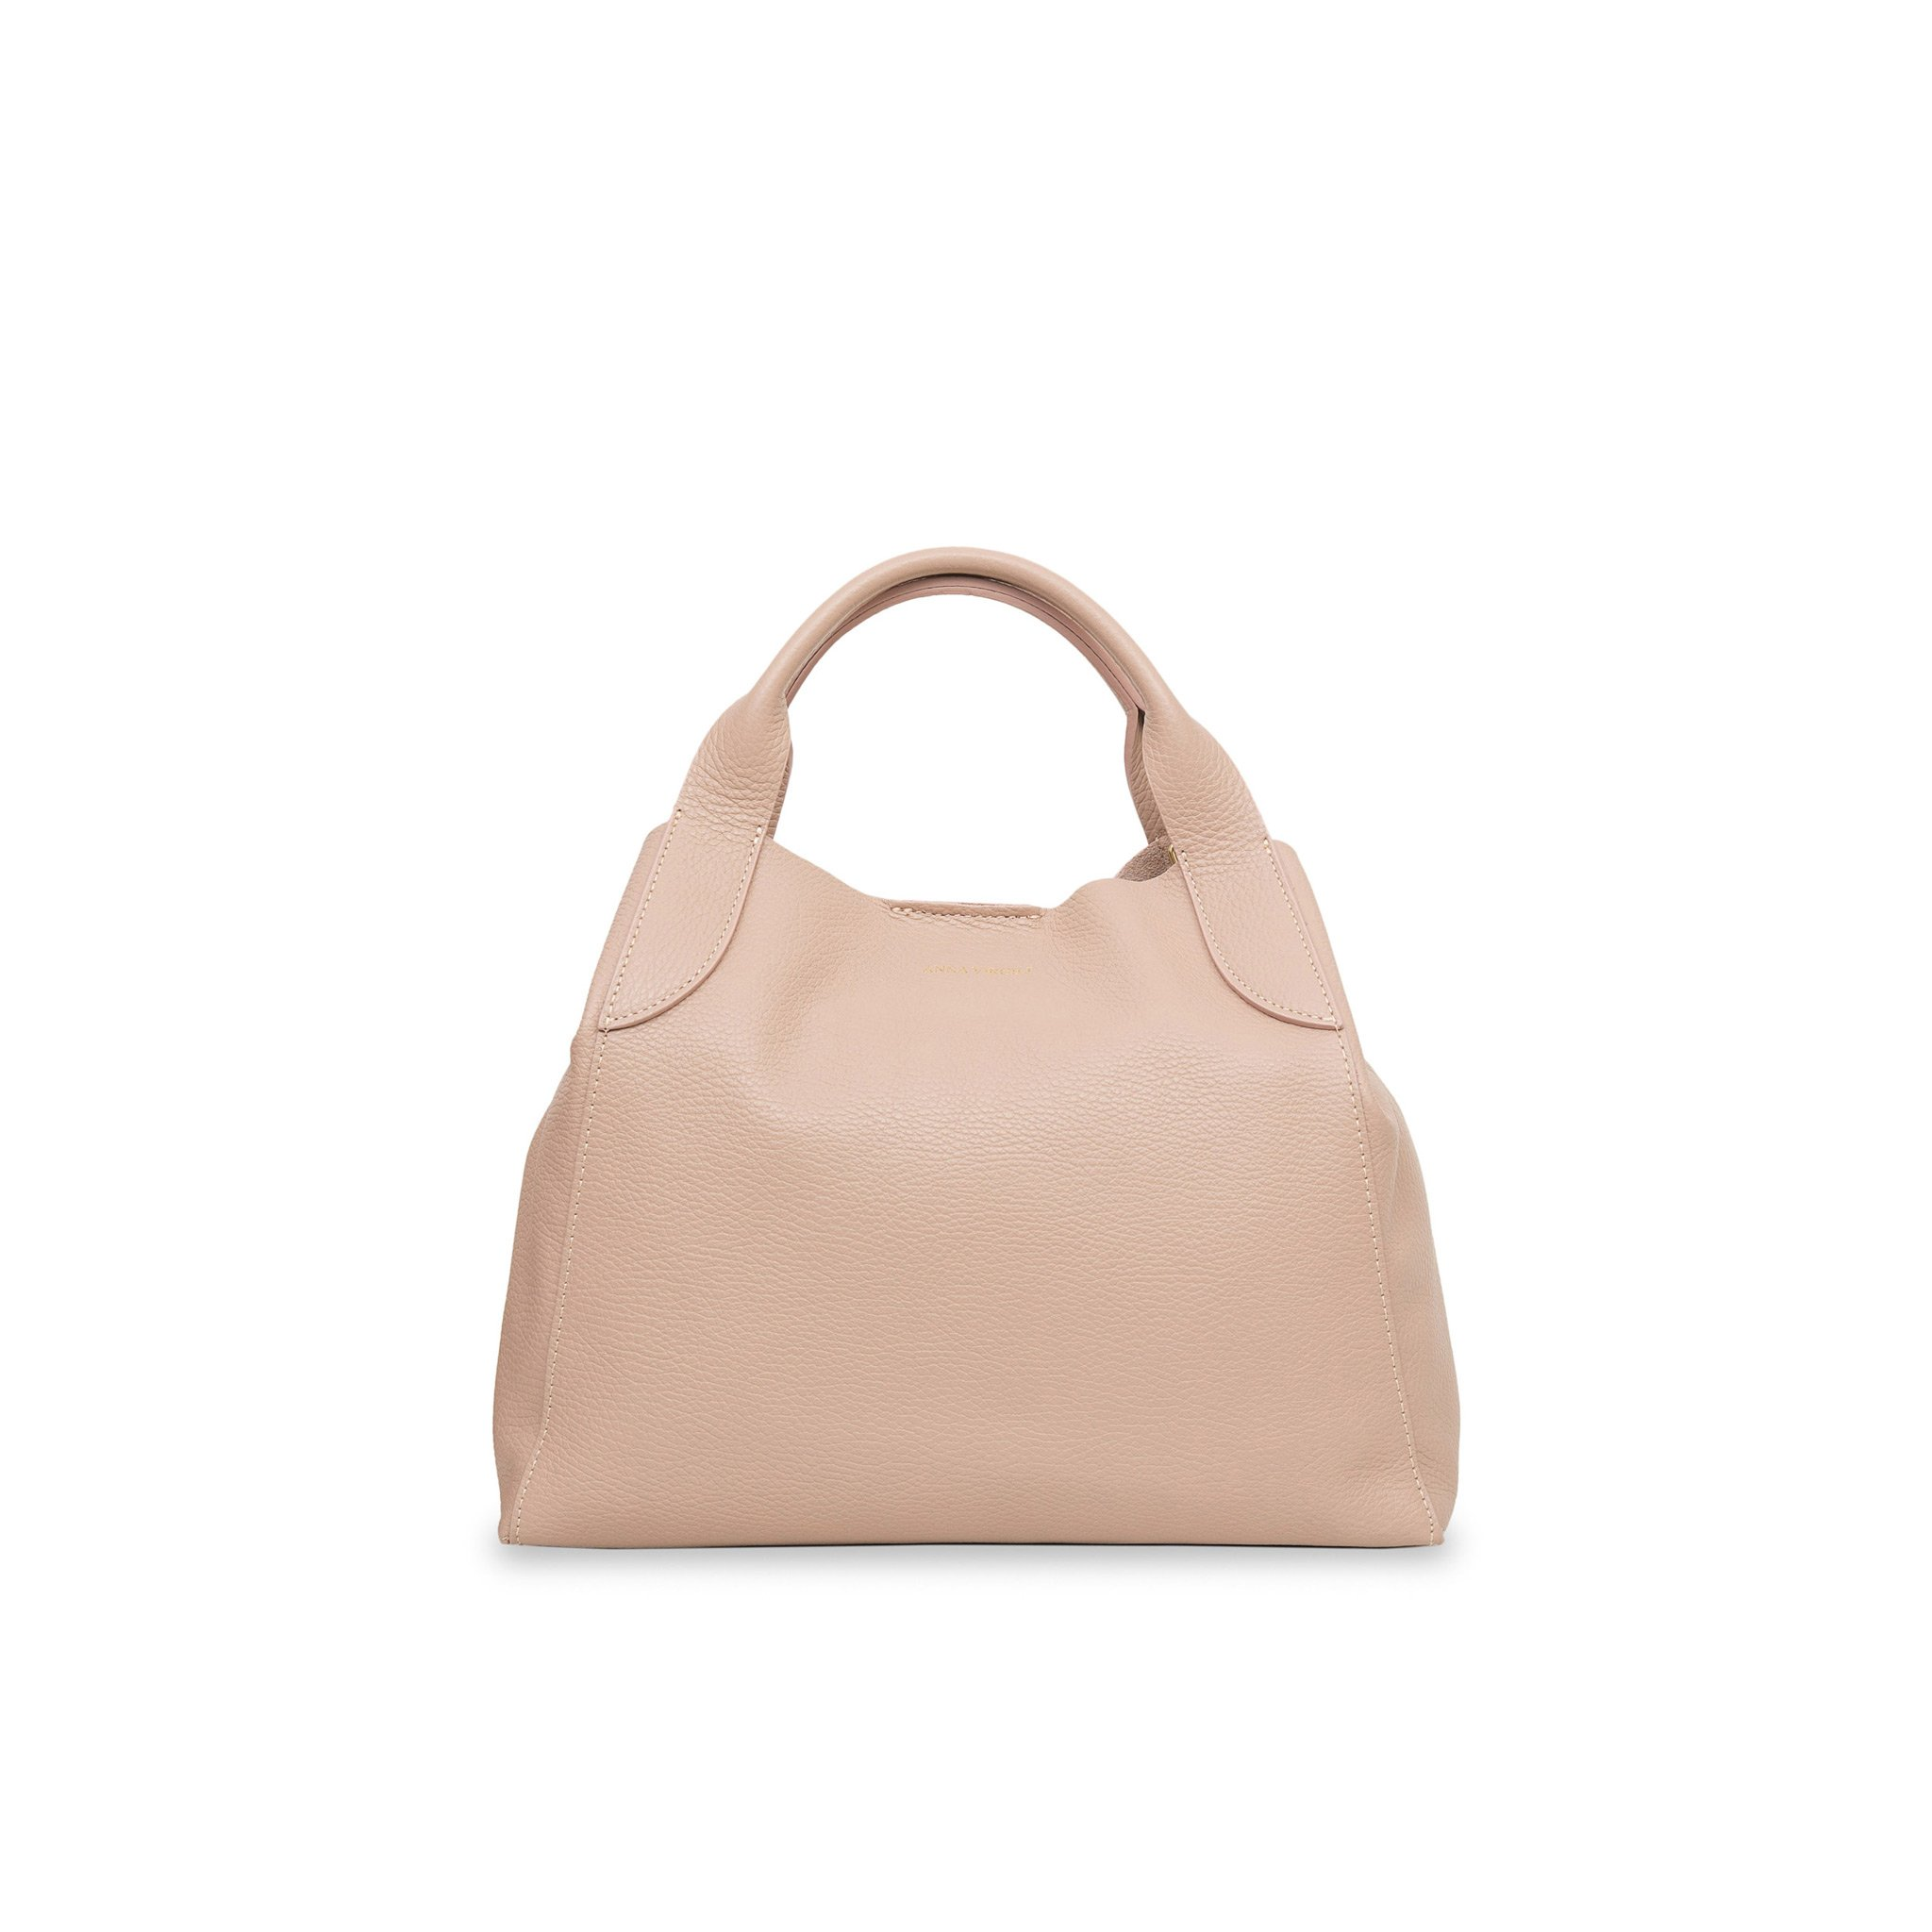 Alice Mini Palermo Leather Handbag - Nude